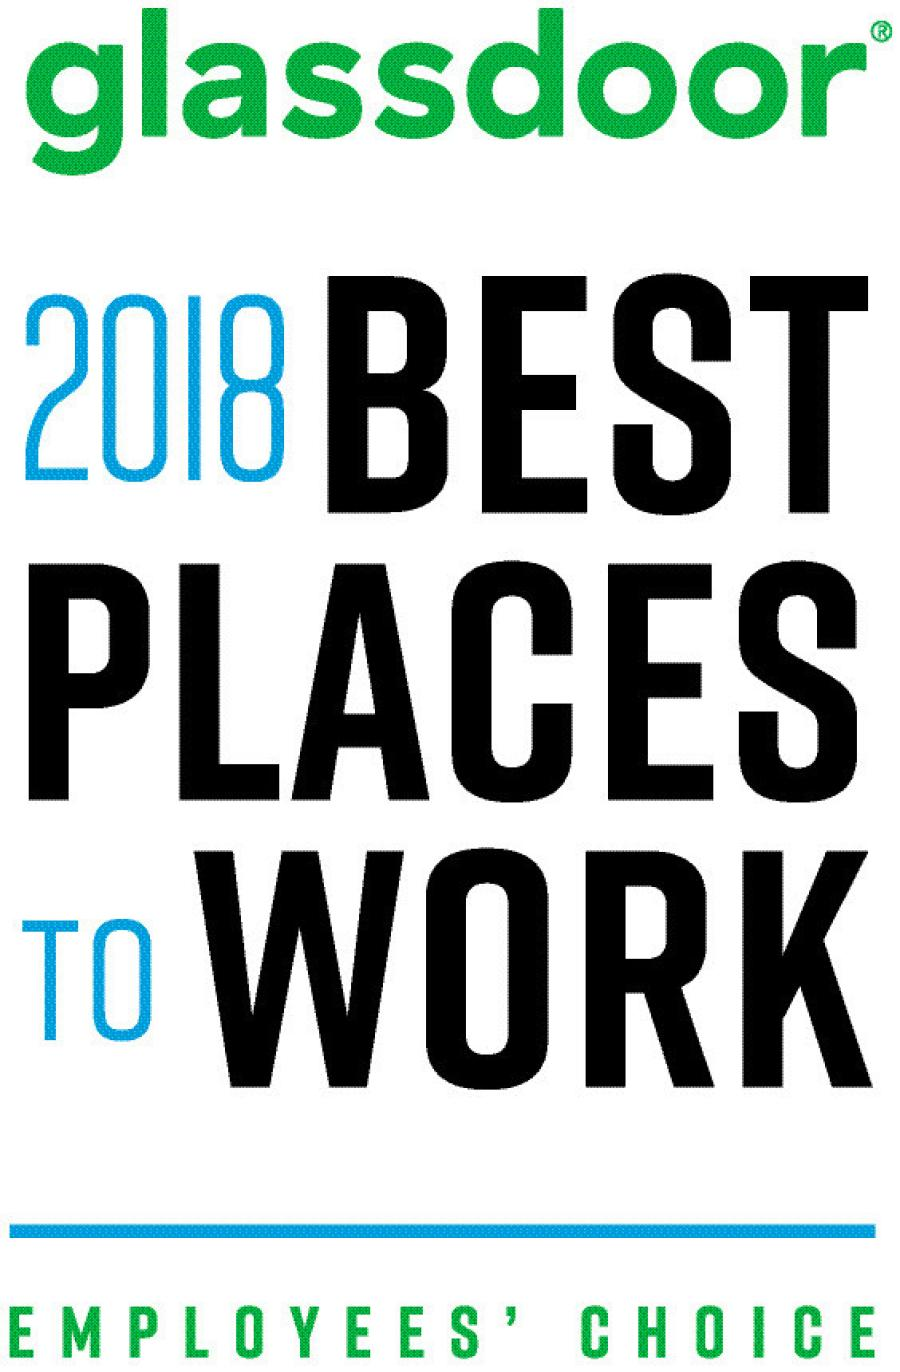 Oshkosh Corporation Honored By Glassdoor As One Of The Best Places